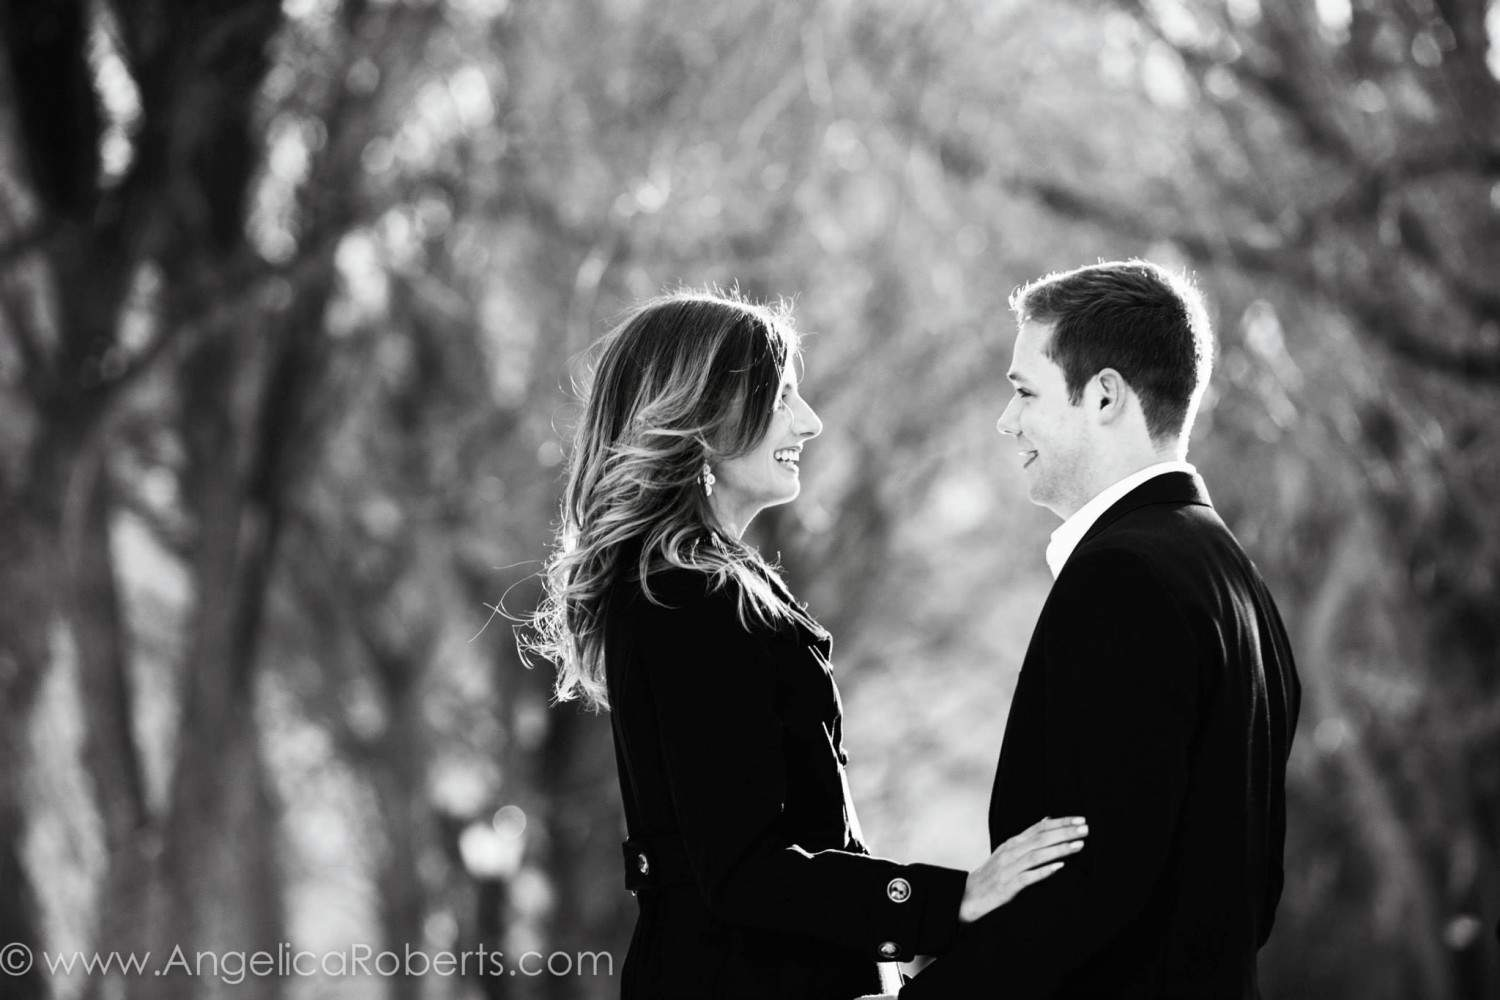 Angelica Roberts Photography - Central Park Engagement shoot 4